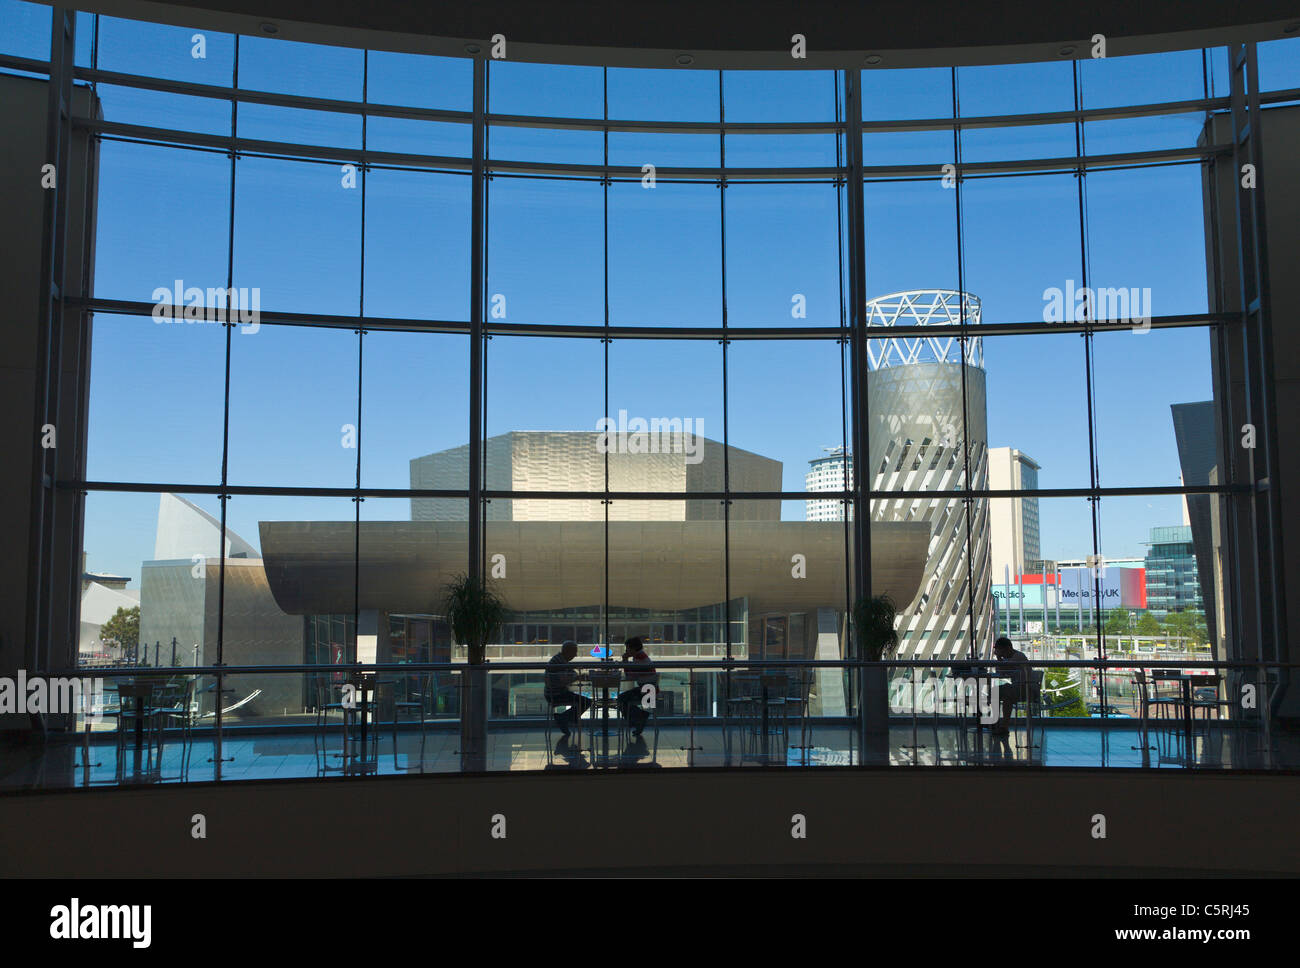 Cafe overlooking the Lowry Centre, Salford Quays, Manchester, England - Stock Image